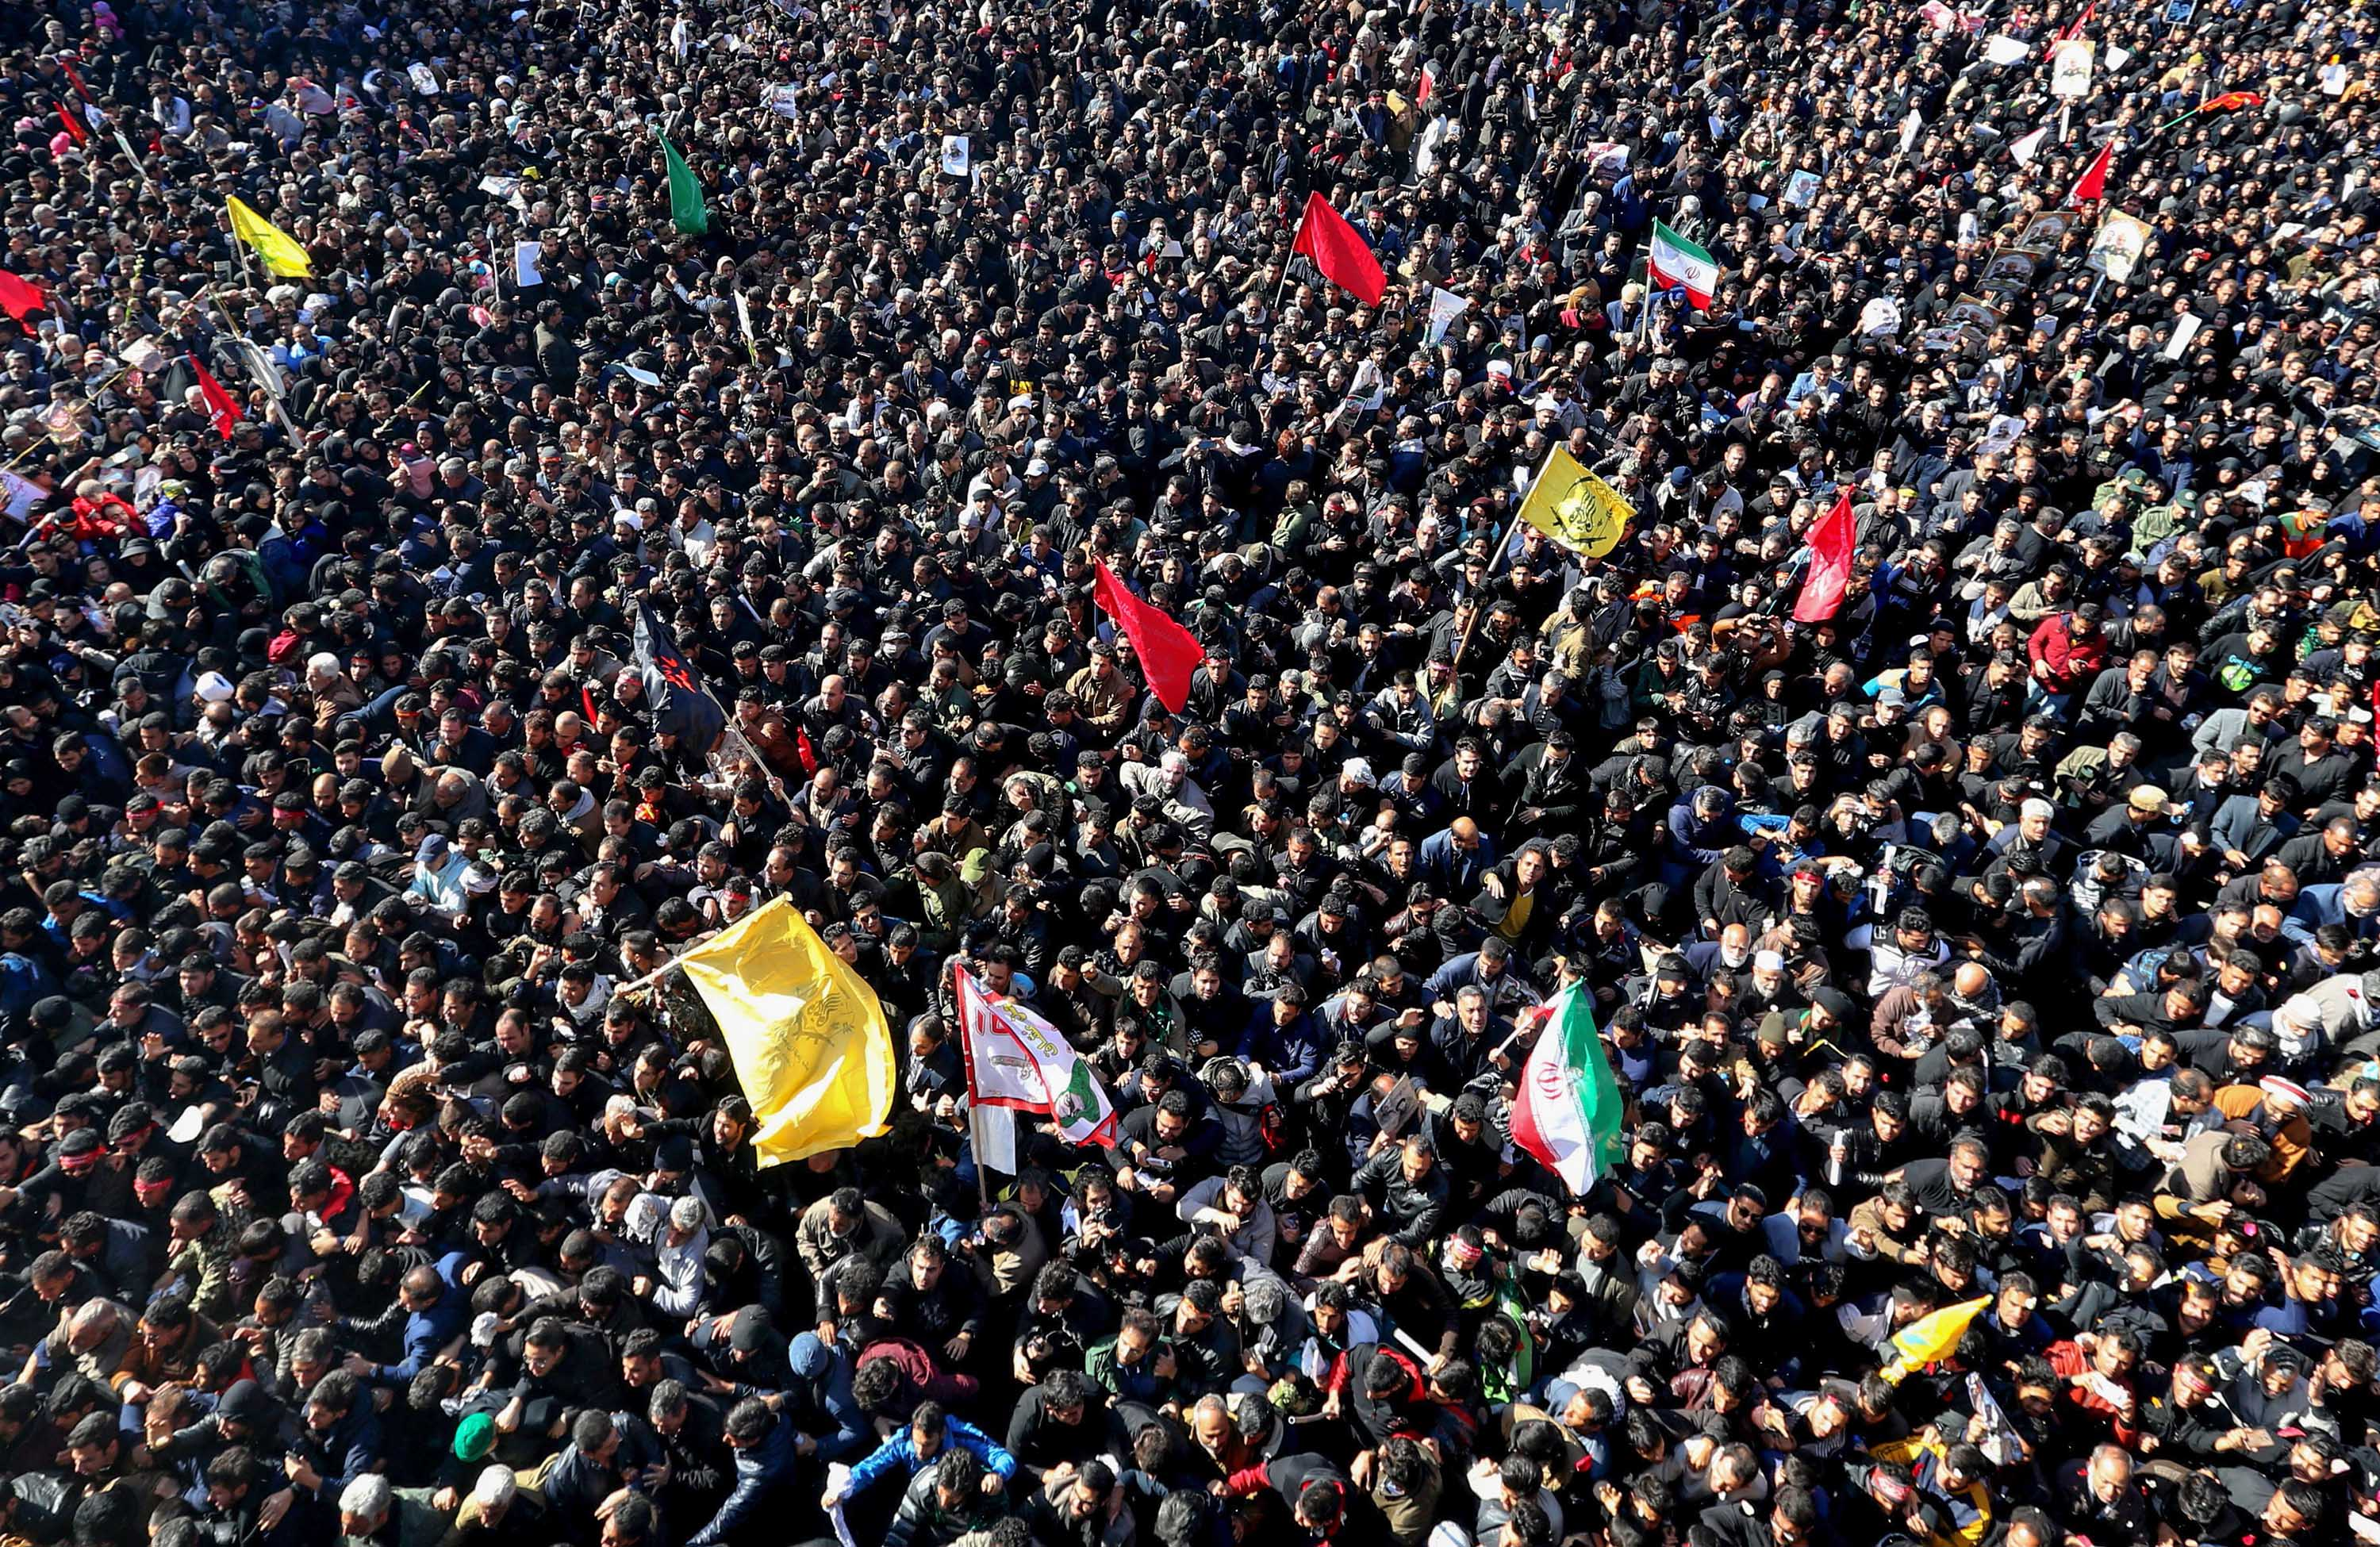 A view of the crowds attending Soleimani's funeral in Kerman in Tuesday. Credit: Atta Kenare/AFP via Getty Images